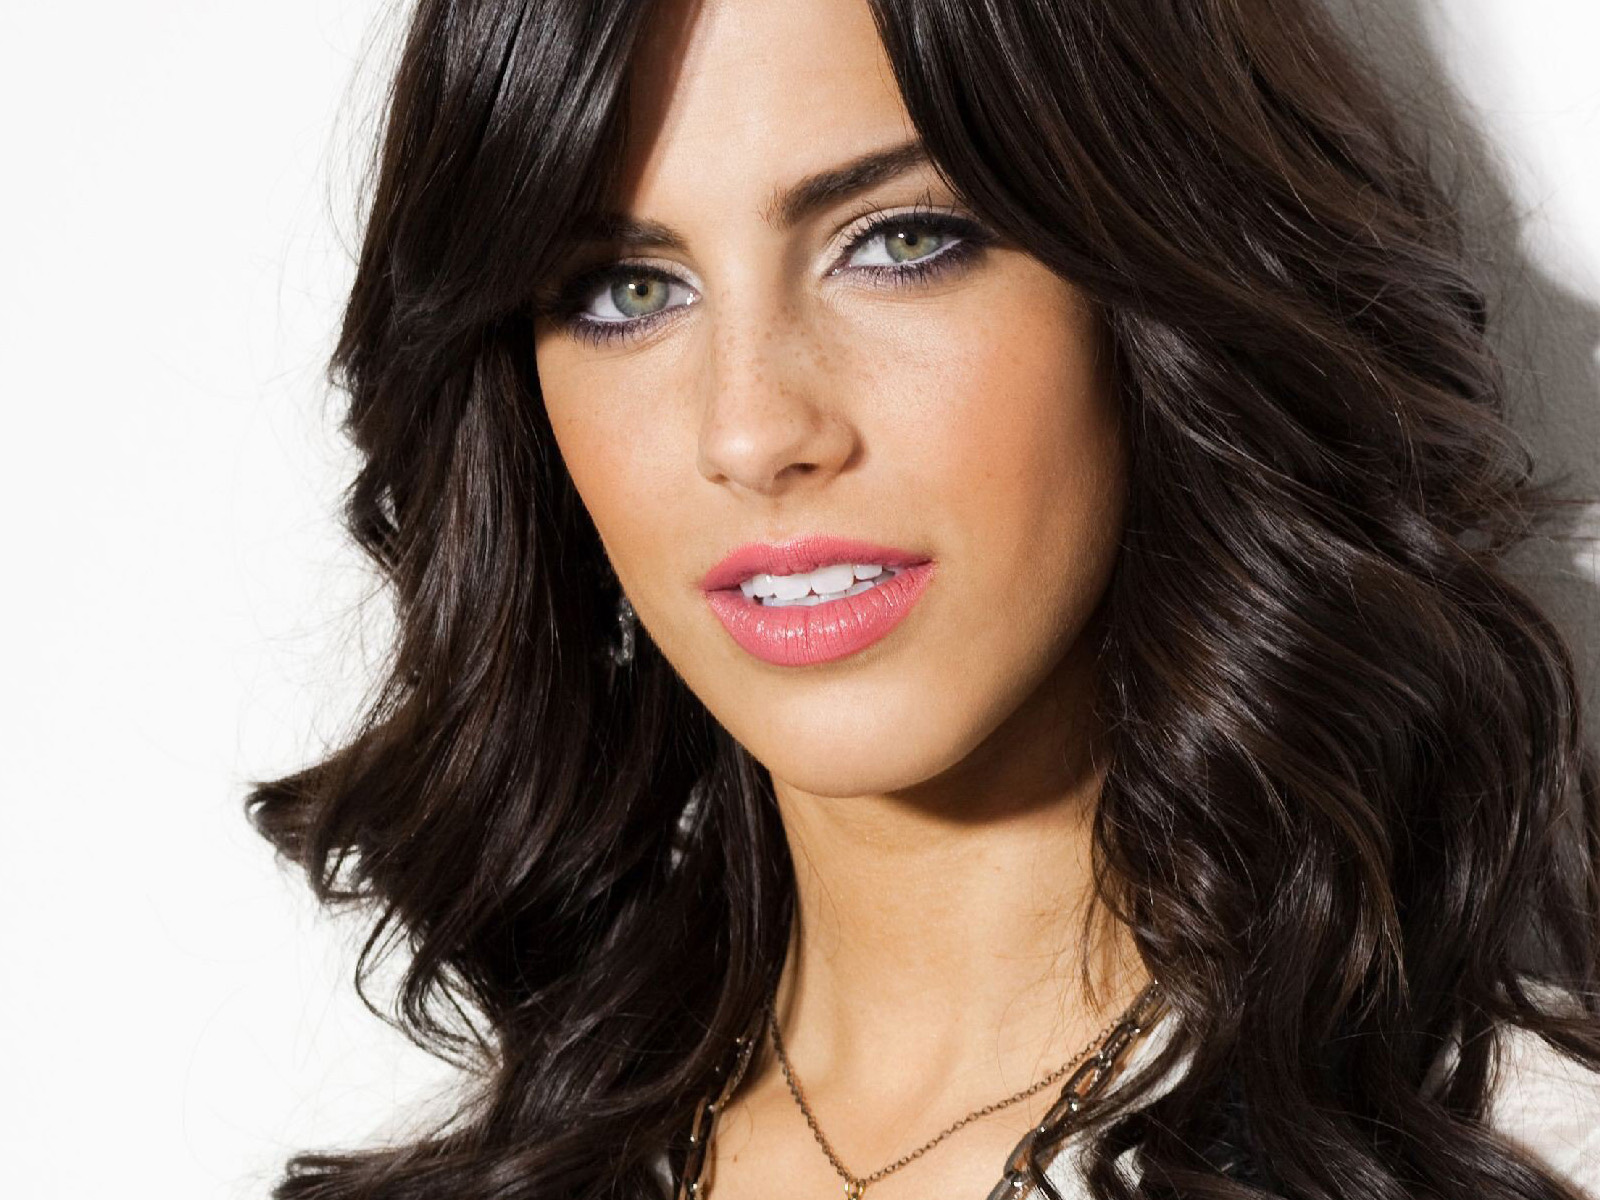 1600x1200 - Jessica Lowndes Wallpapers 30